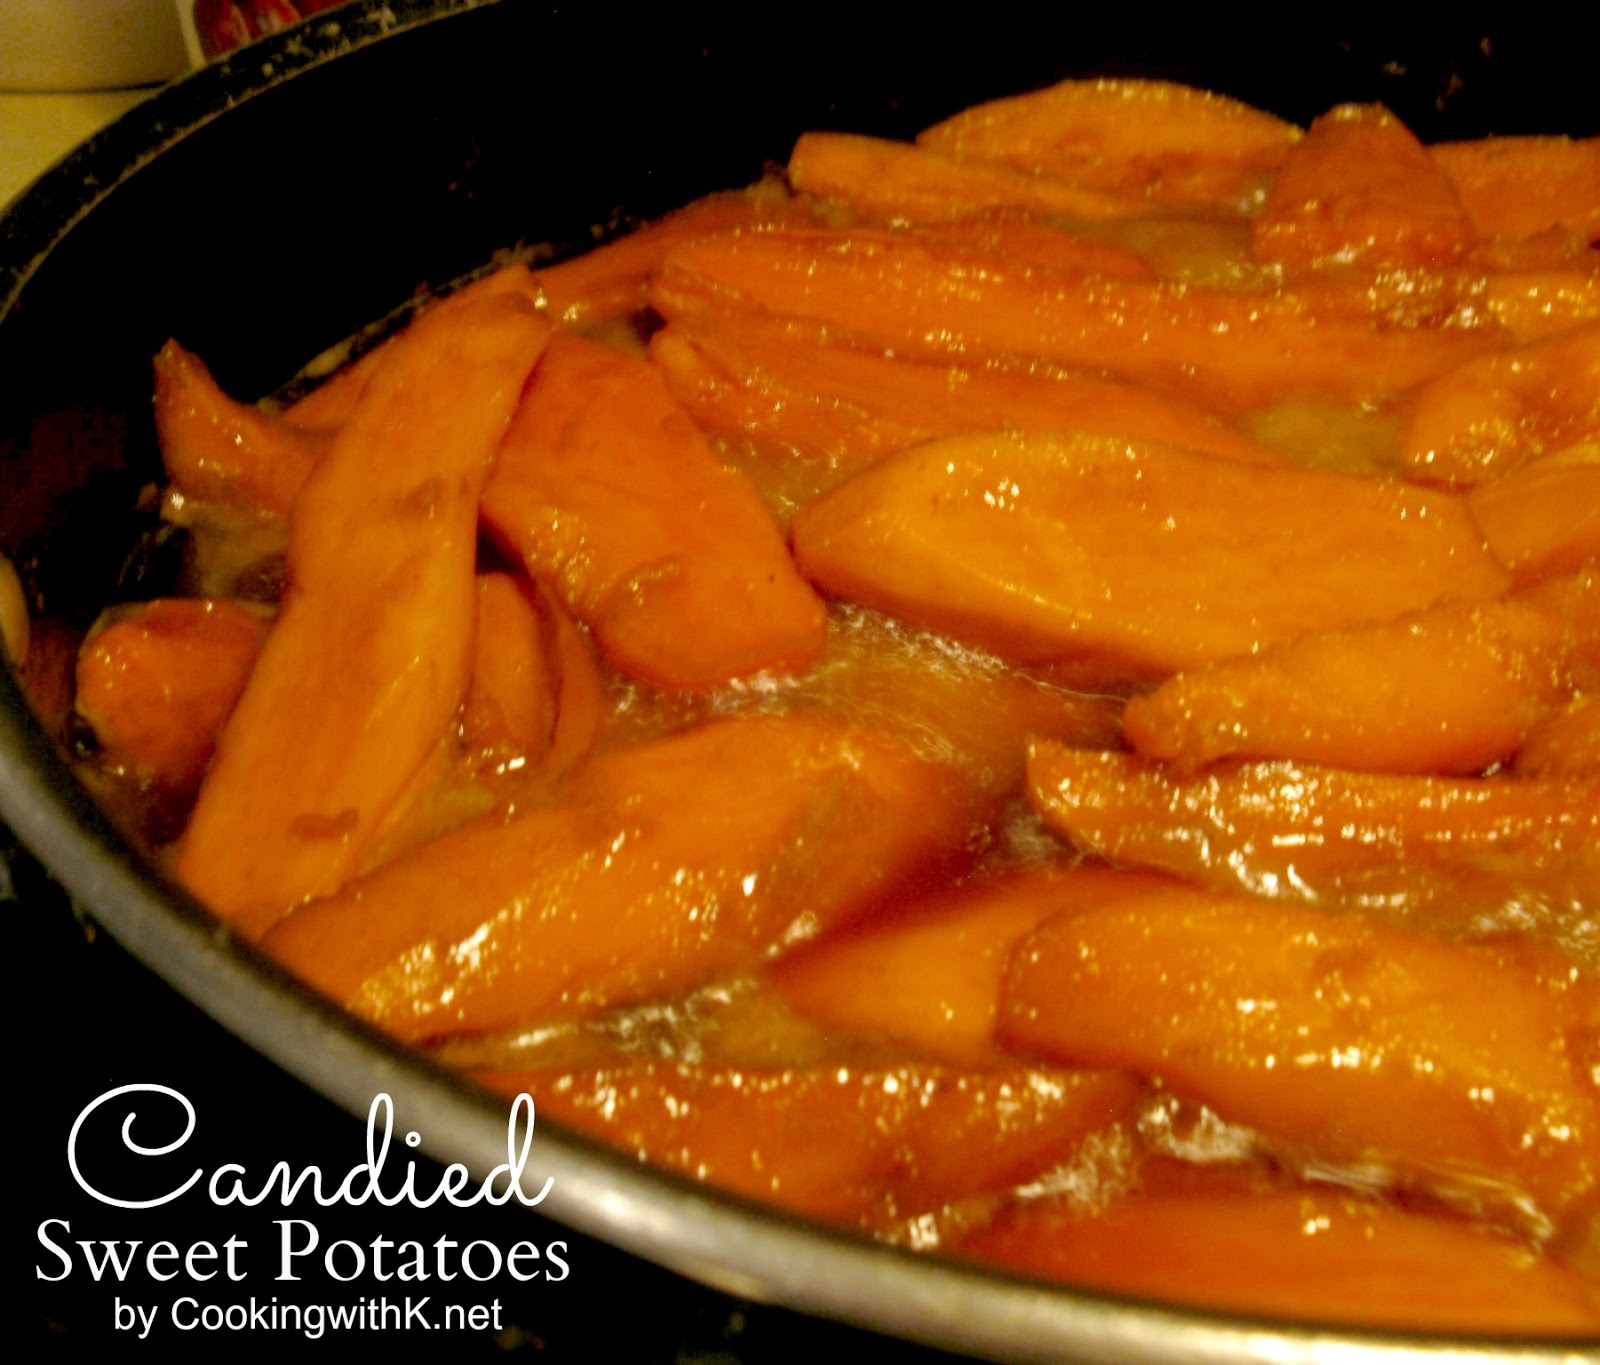 ... Southern Candied Sweet Potatoes {There is more to sweet potatoes than